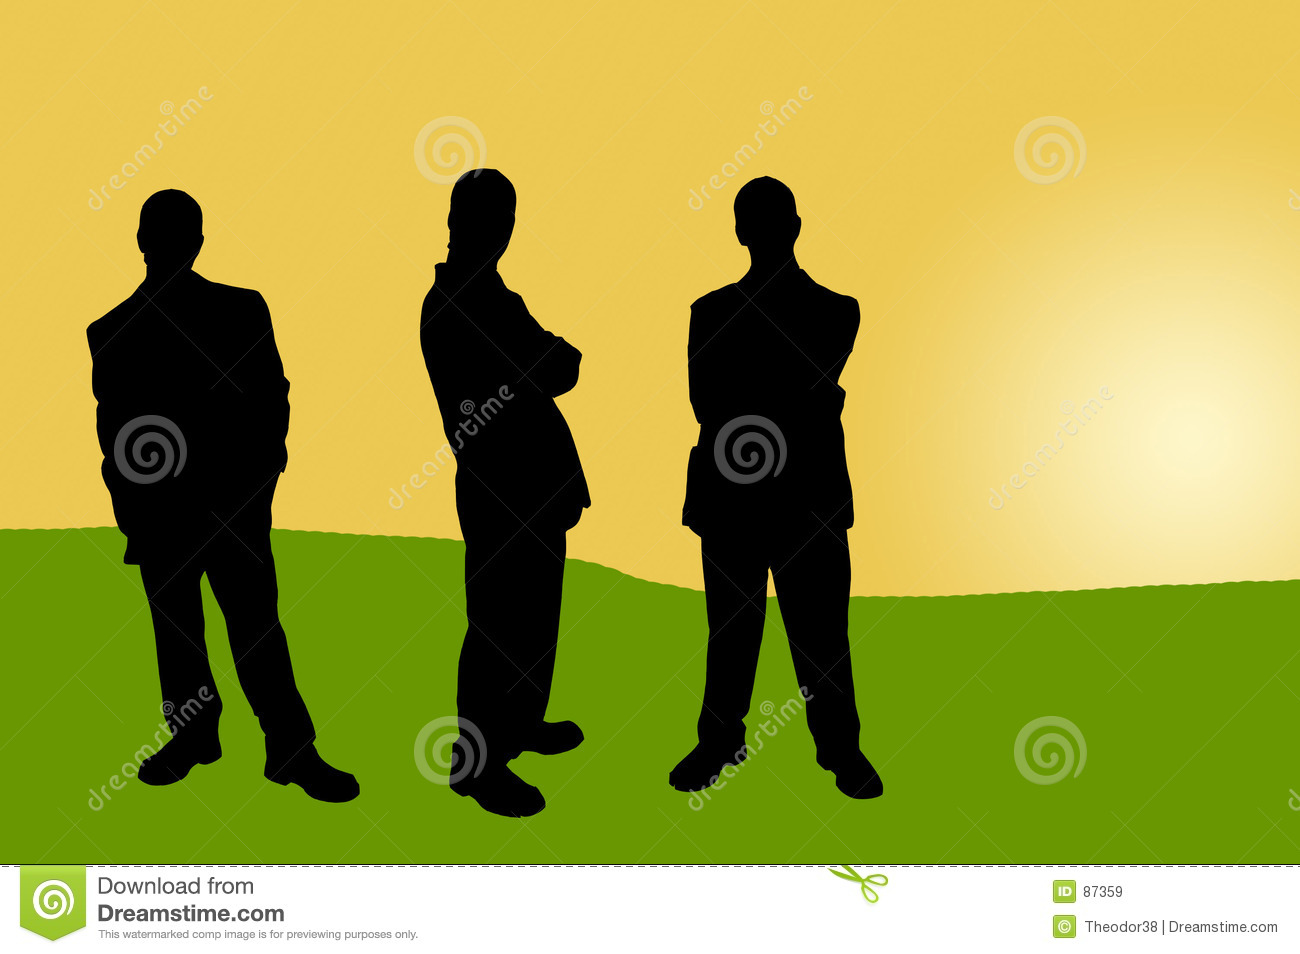 Business people shadows-16